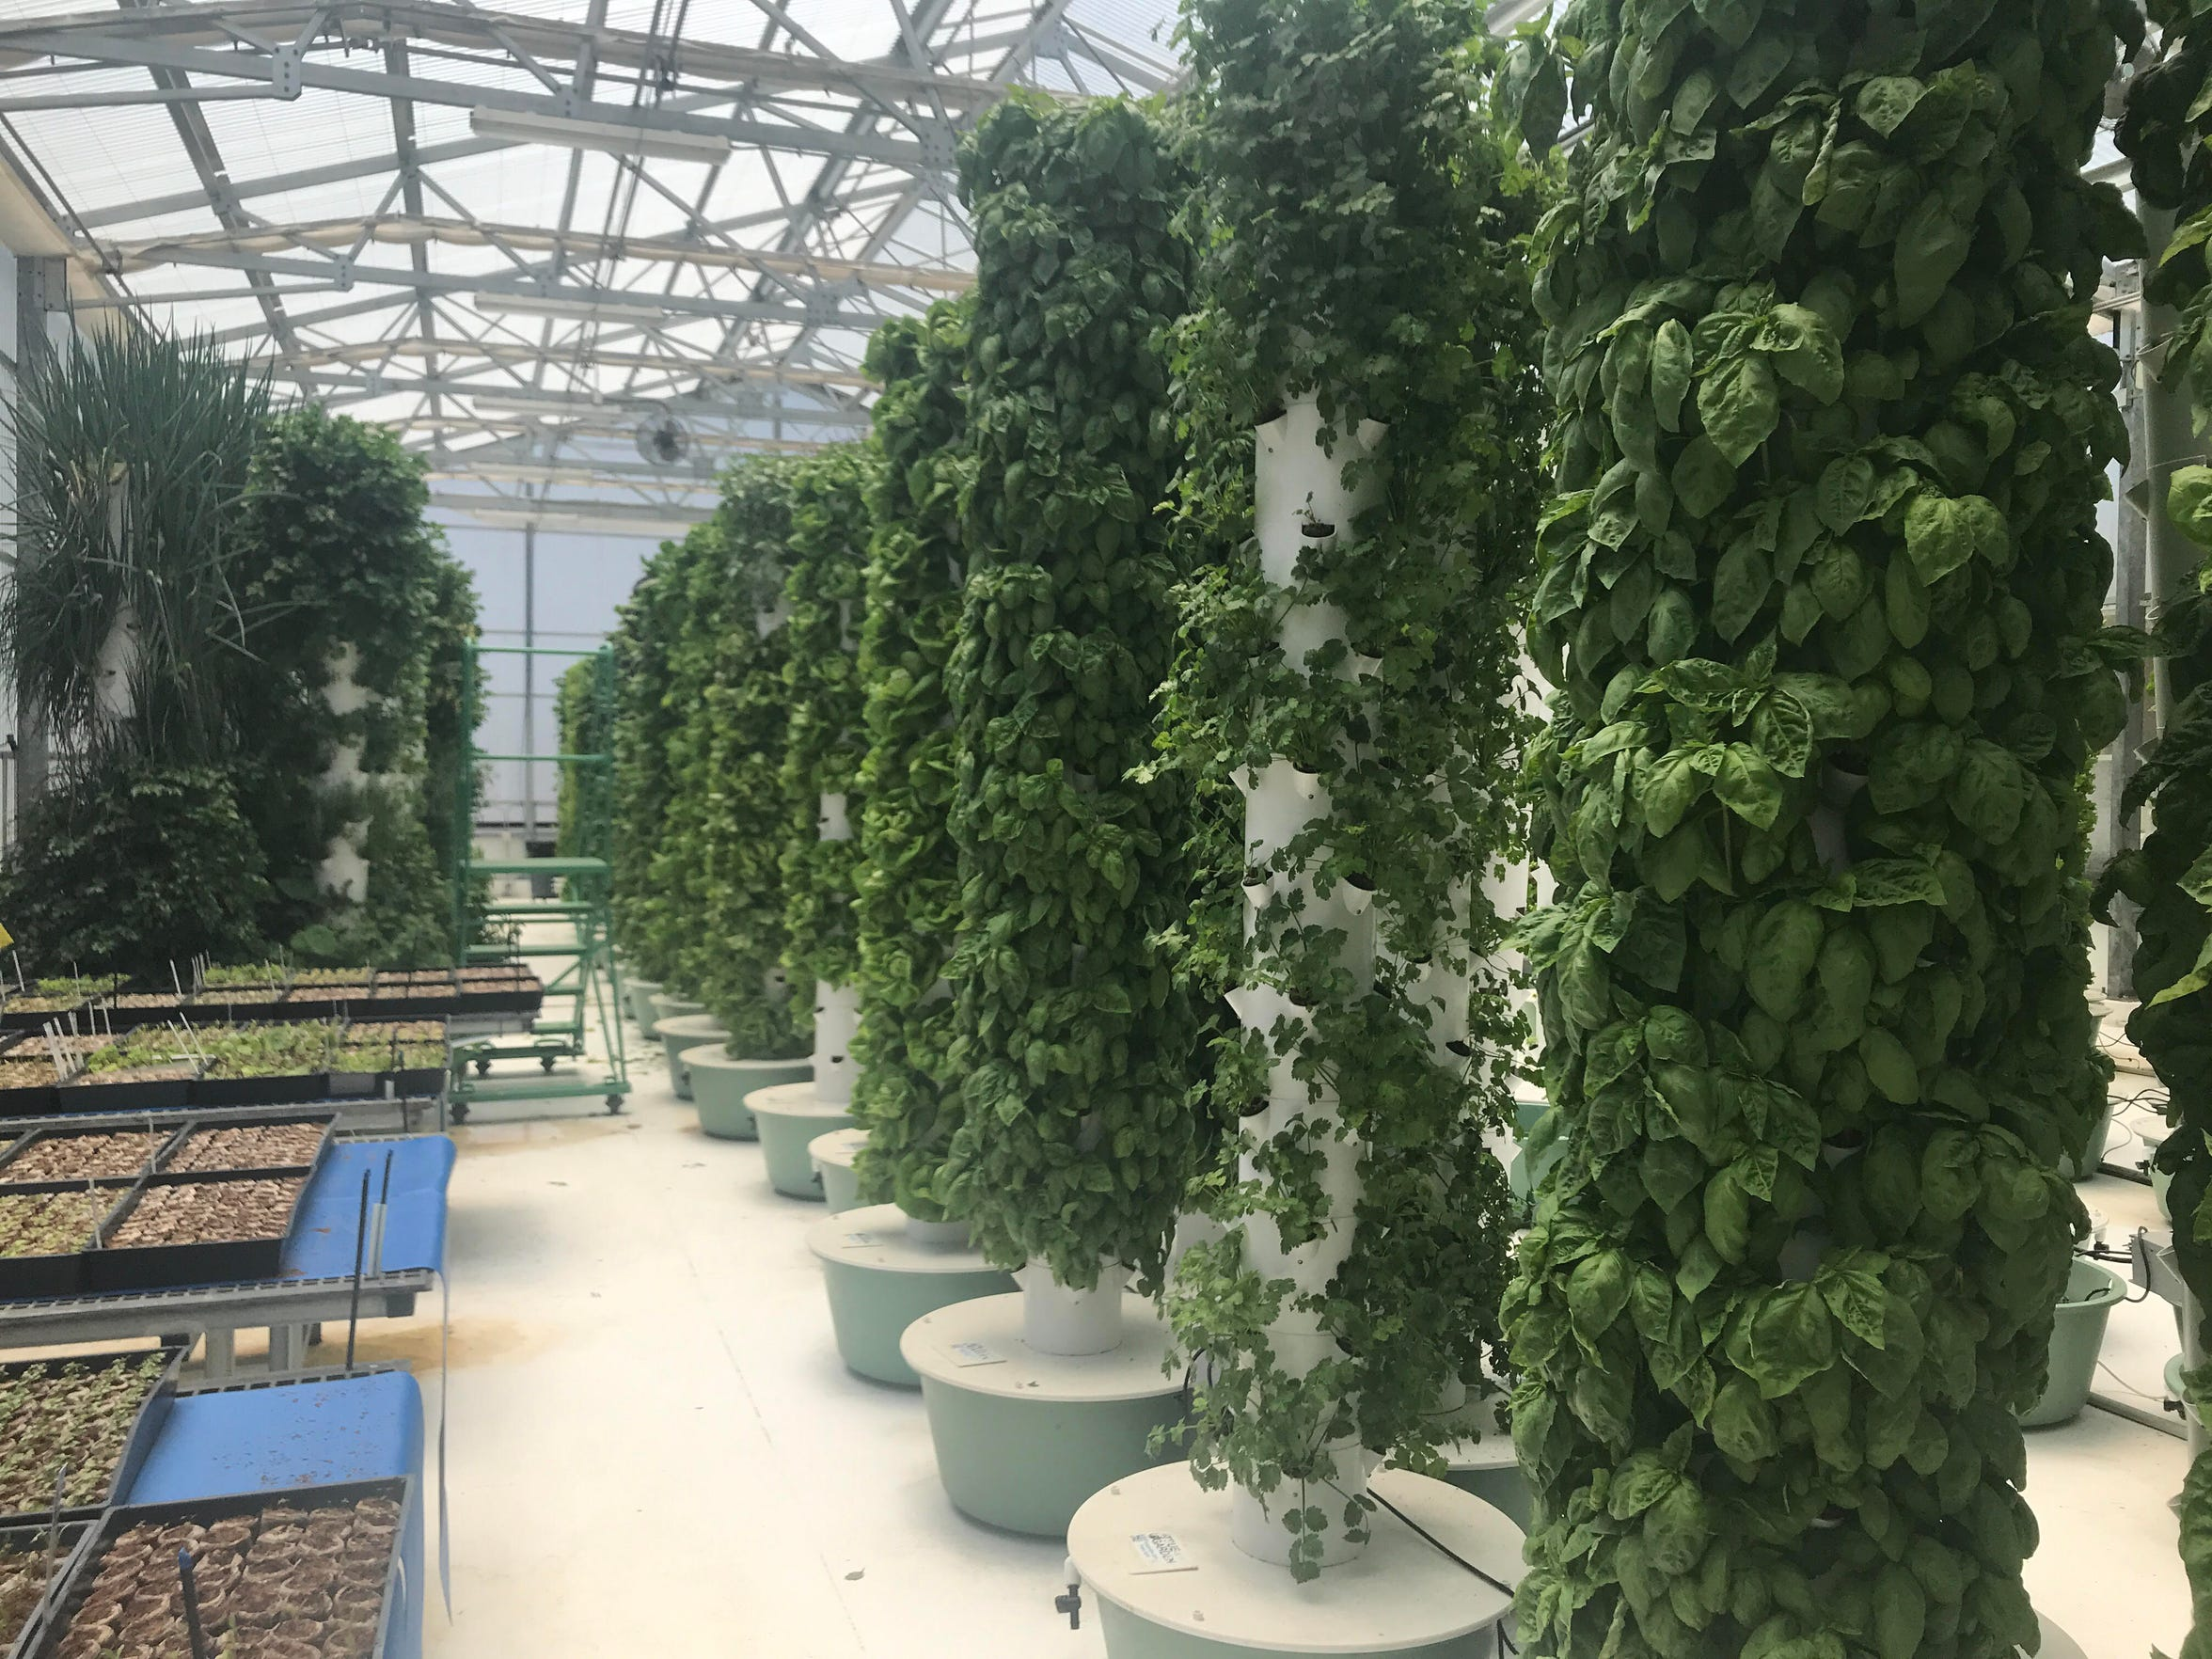 The vertical aeroponic farming system at True Garden in Mesa allows owner Troy Albright to grow an acre's worth of food on a tenth of the space.